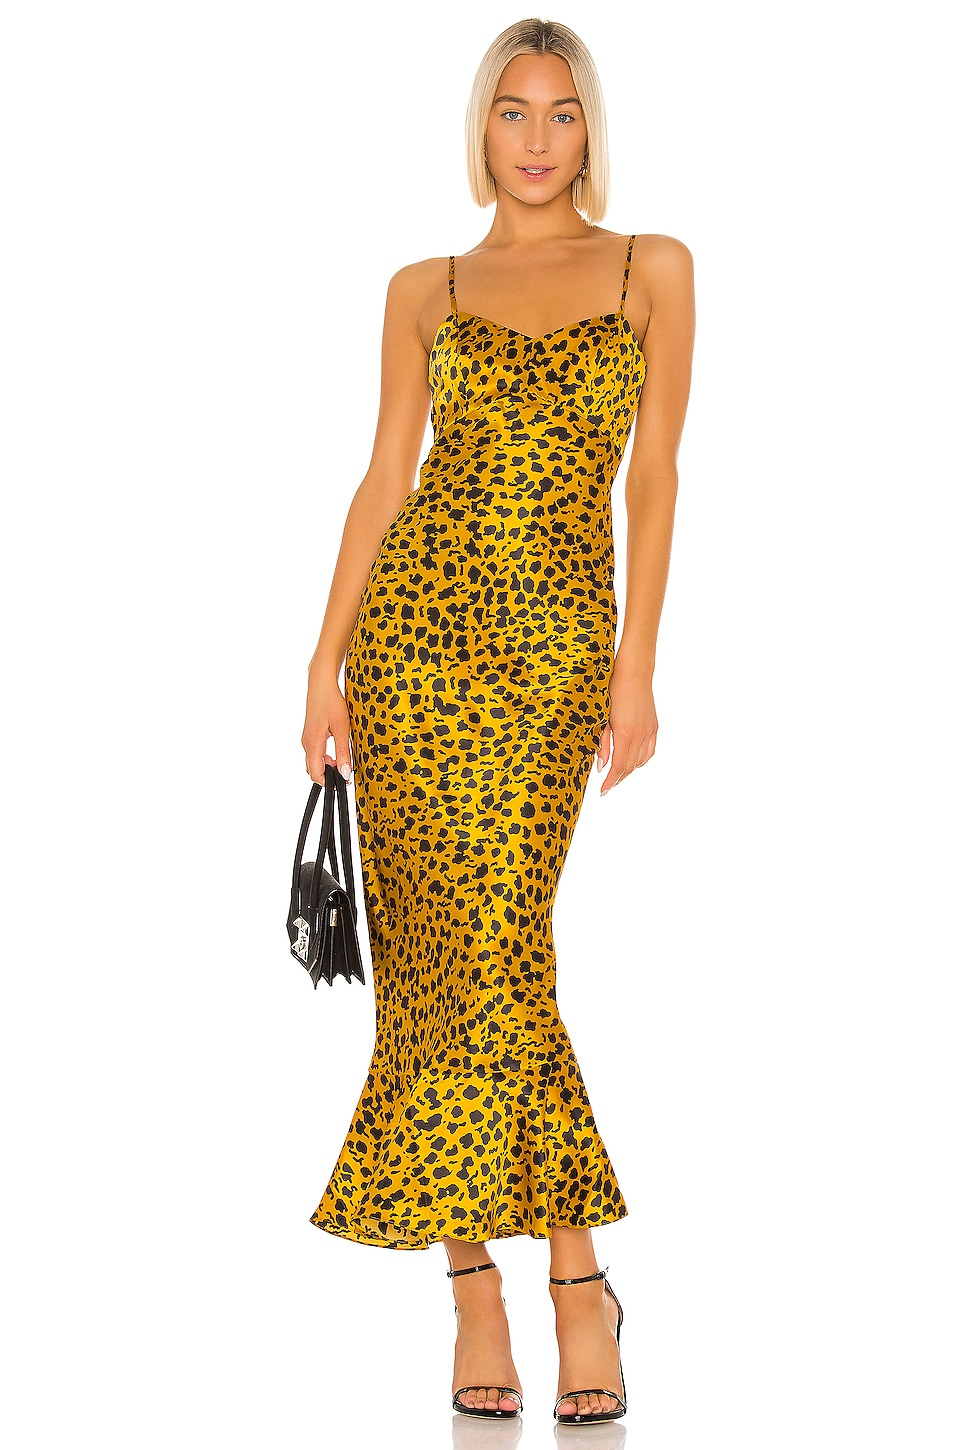 SALONI Mimi Dress in Gold Camo Leopard